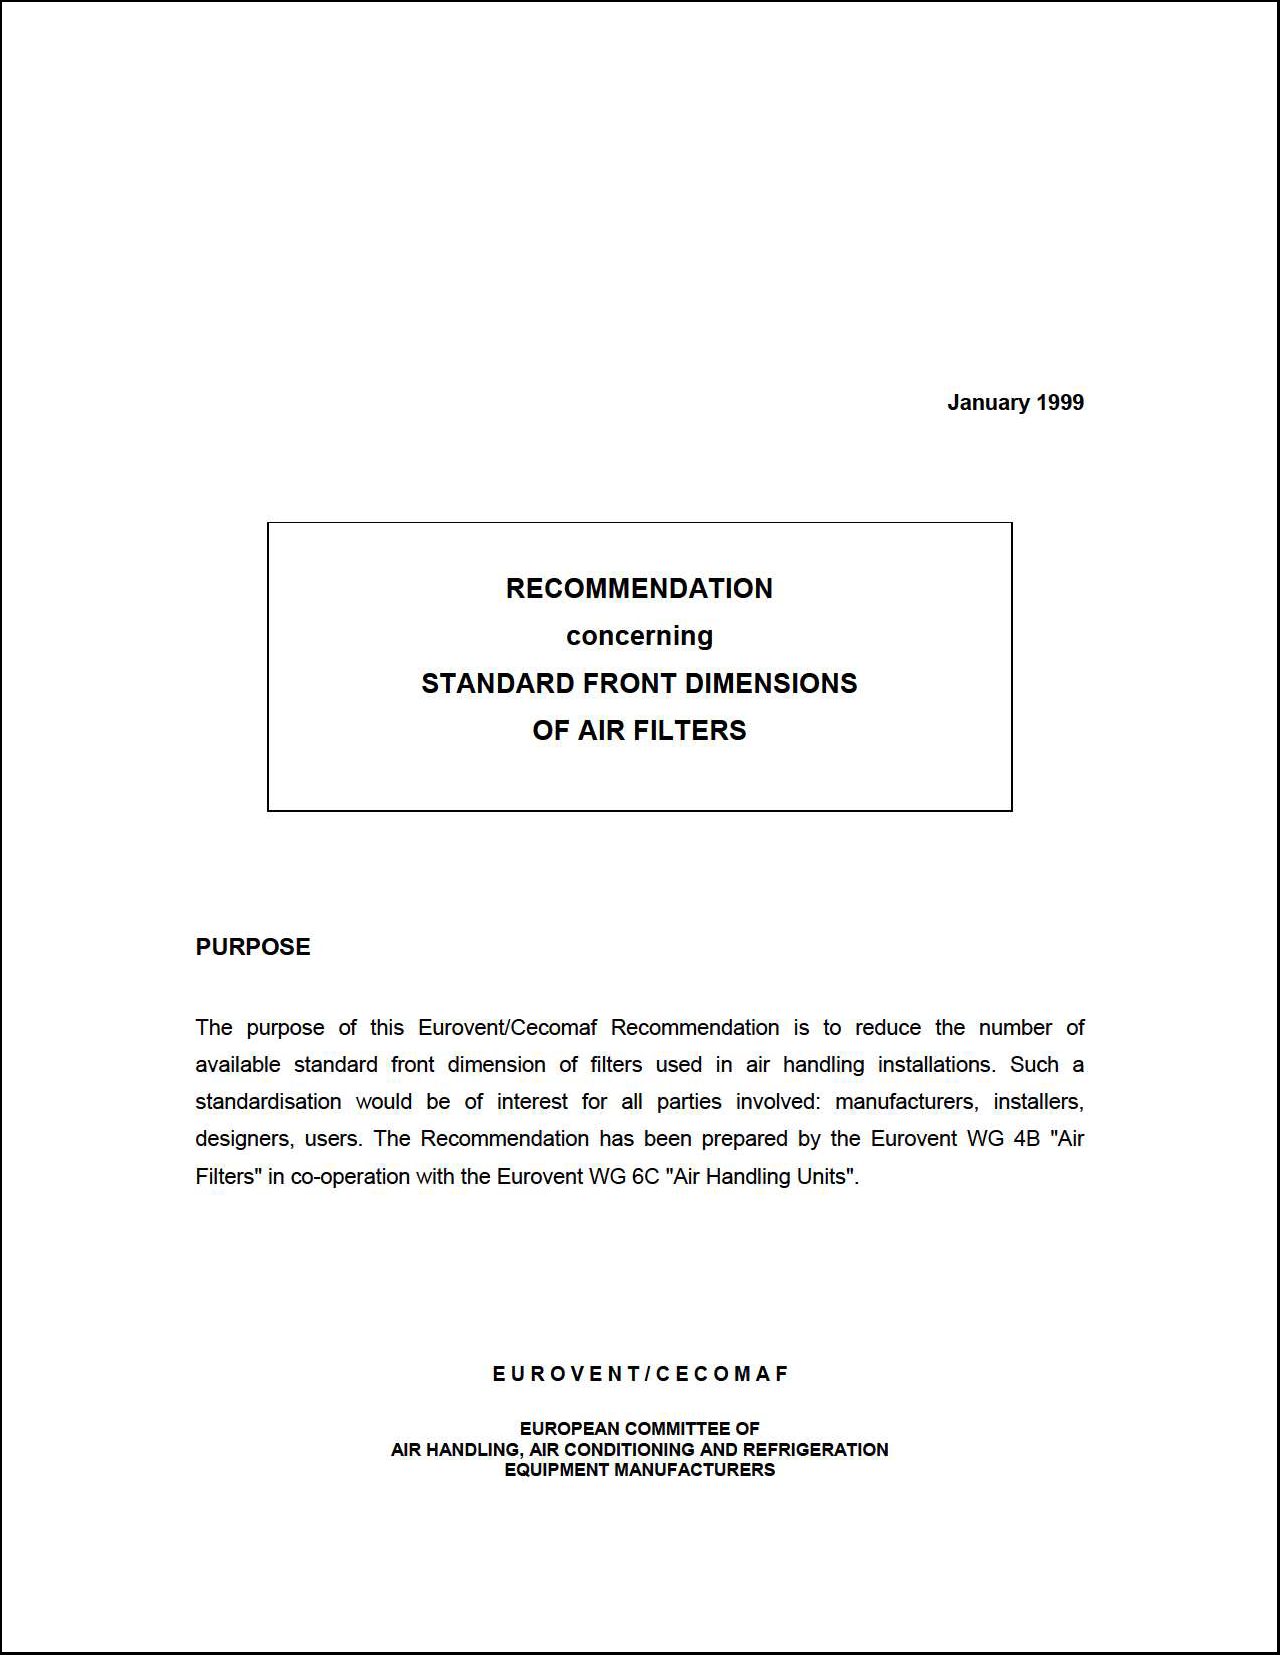 1999 - Recommendation concerning Standard front dimensions or air filters